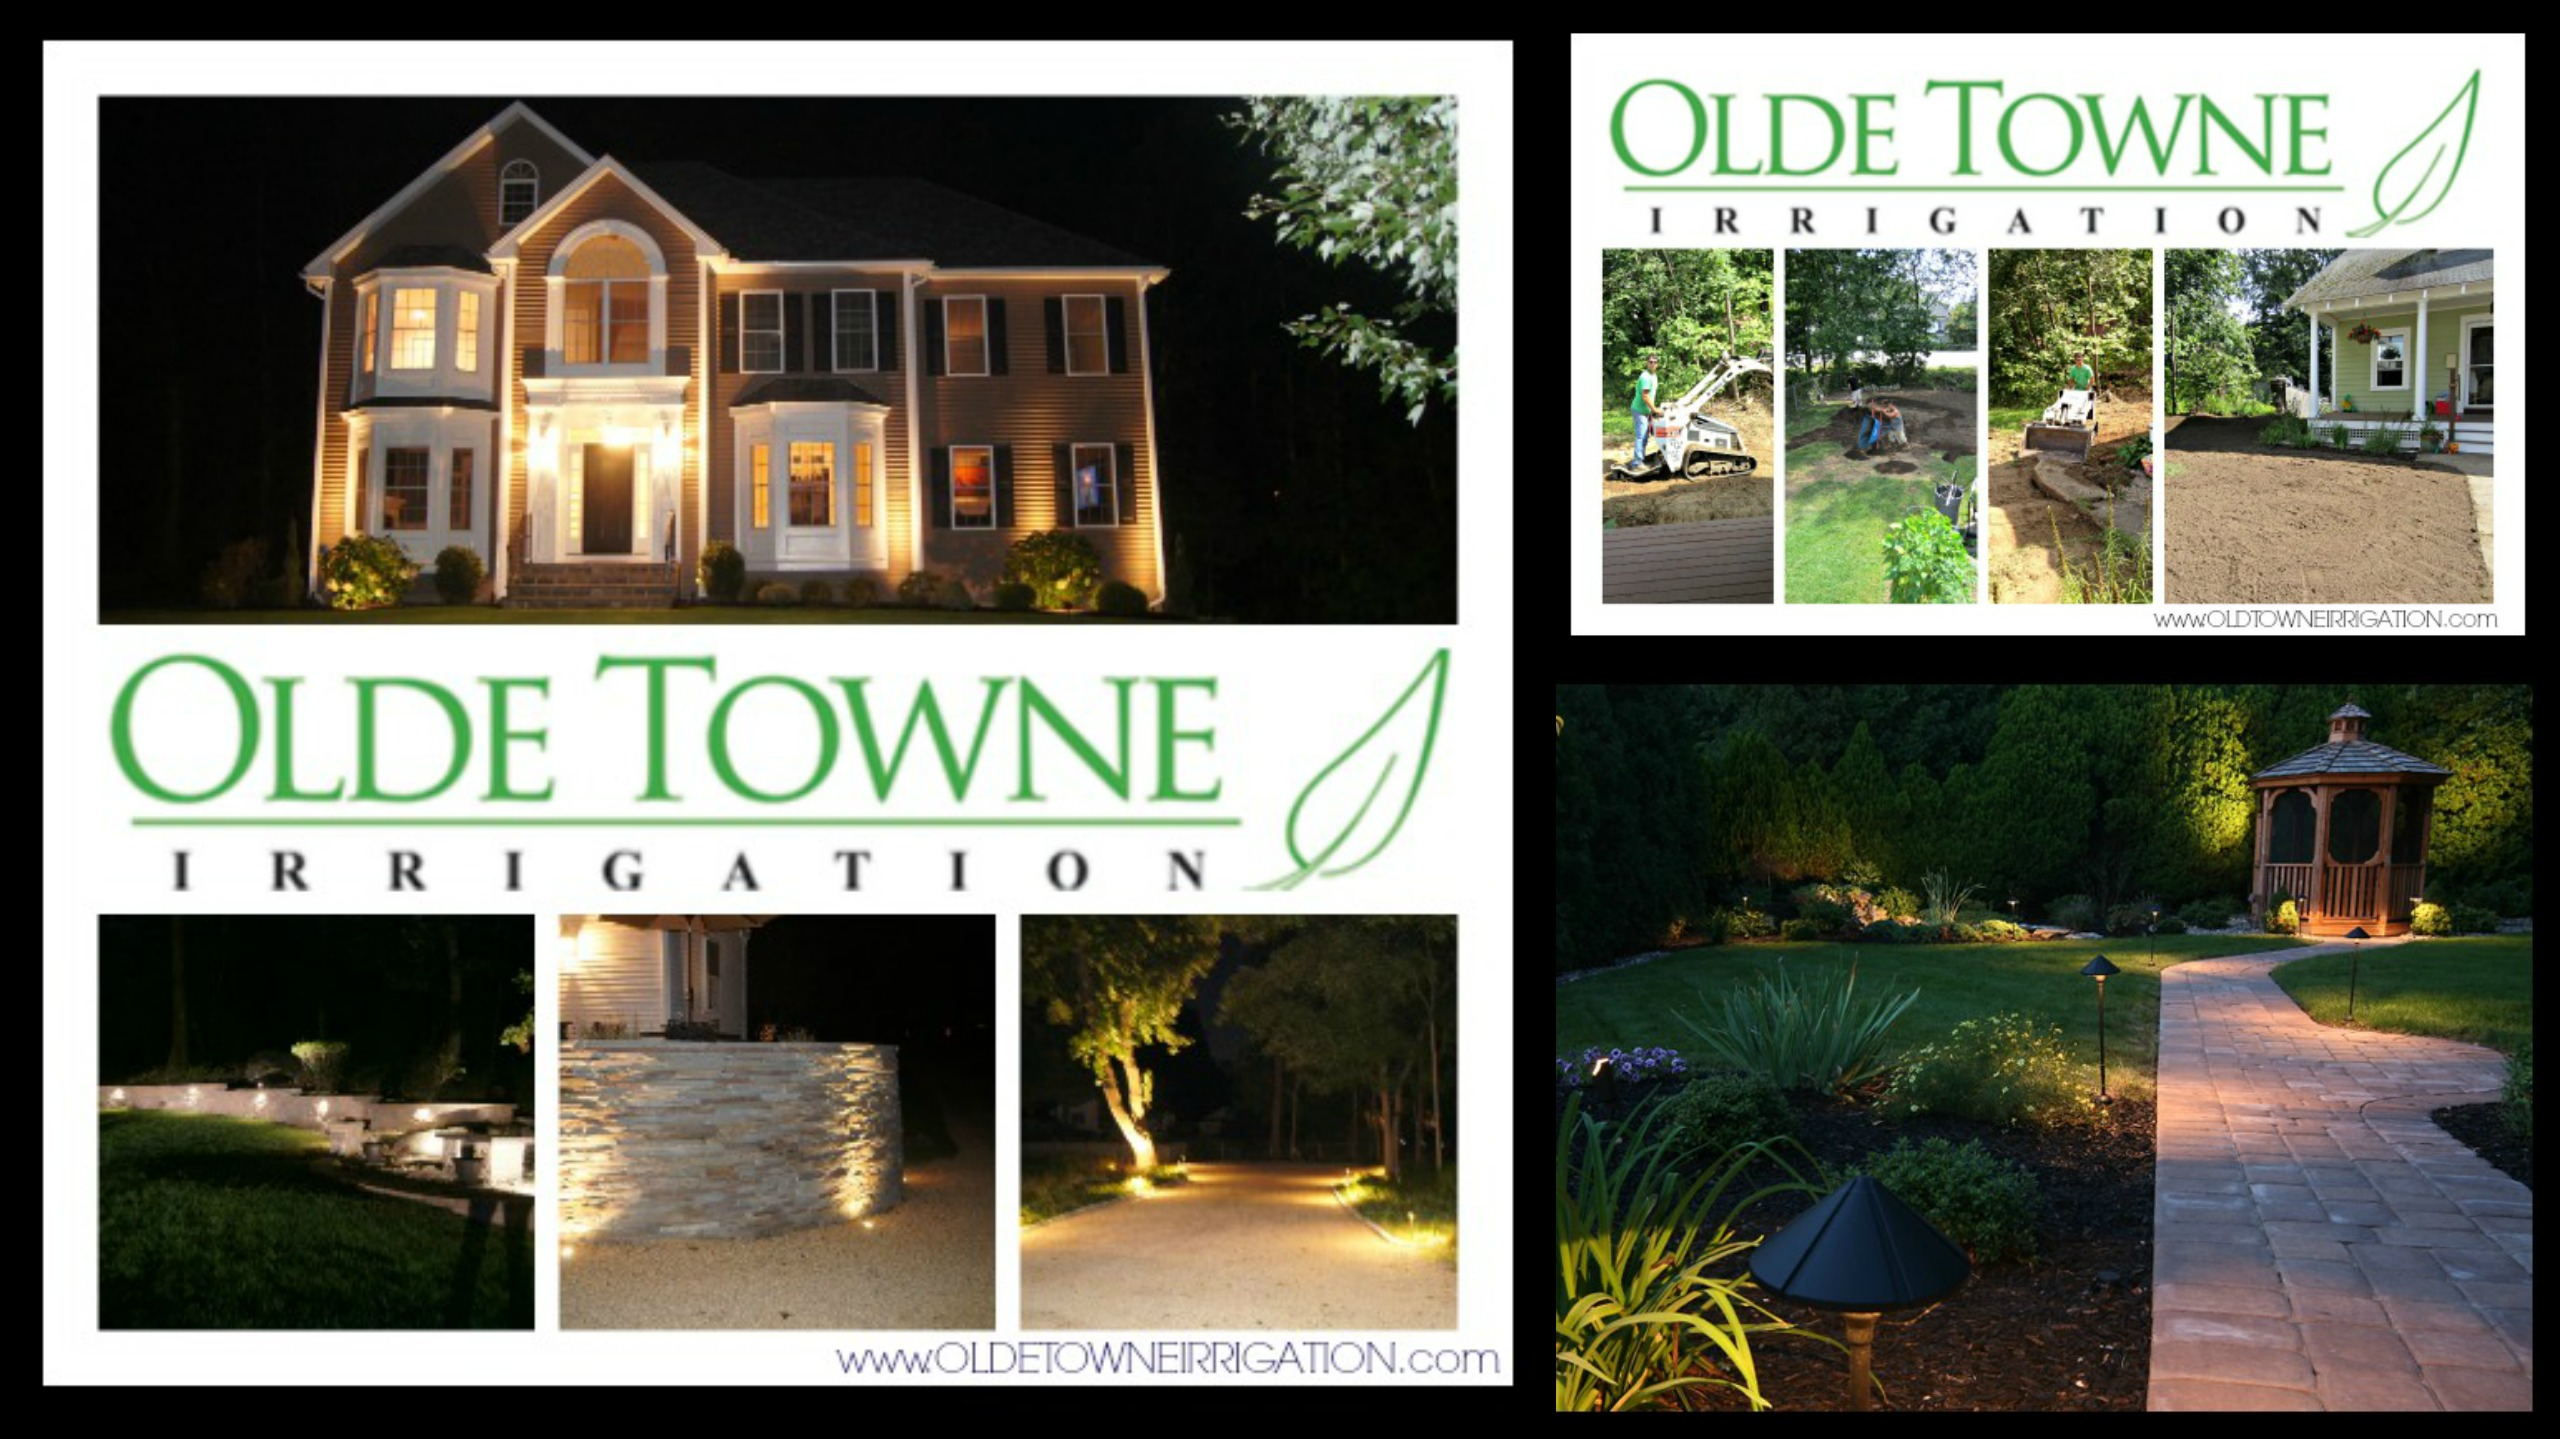 Gifts They Really Want - Olde Towne Irrigation